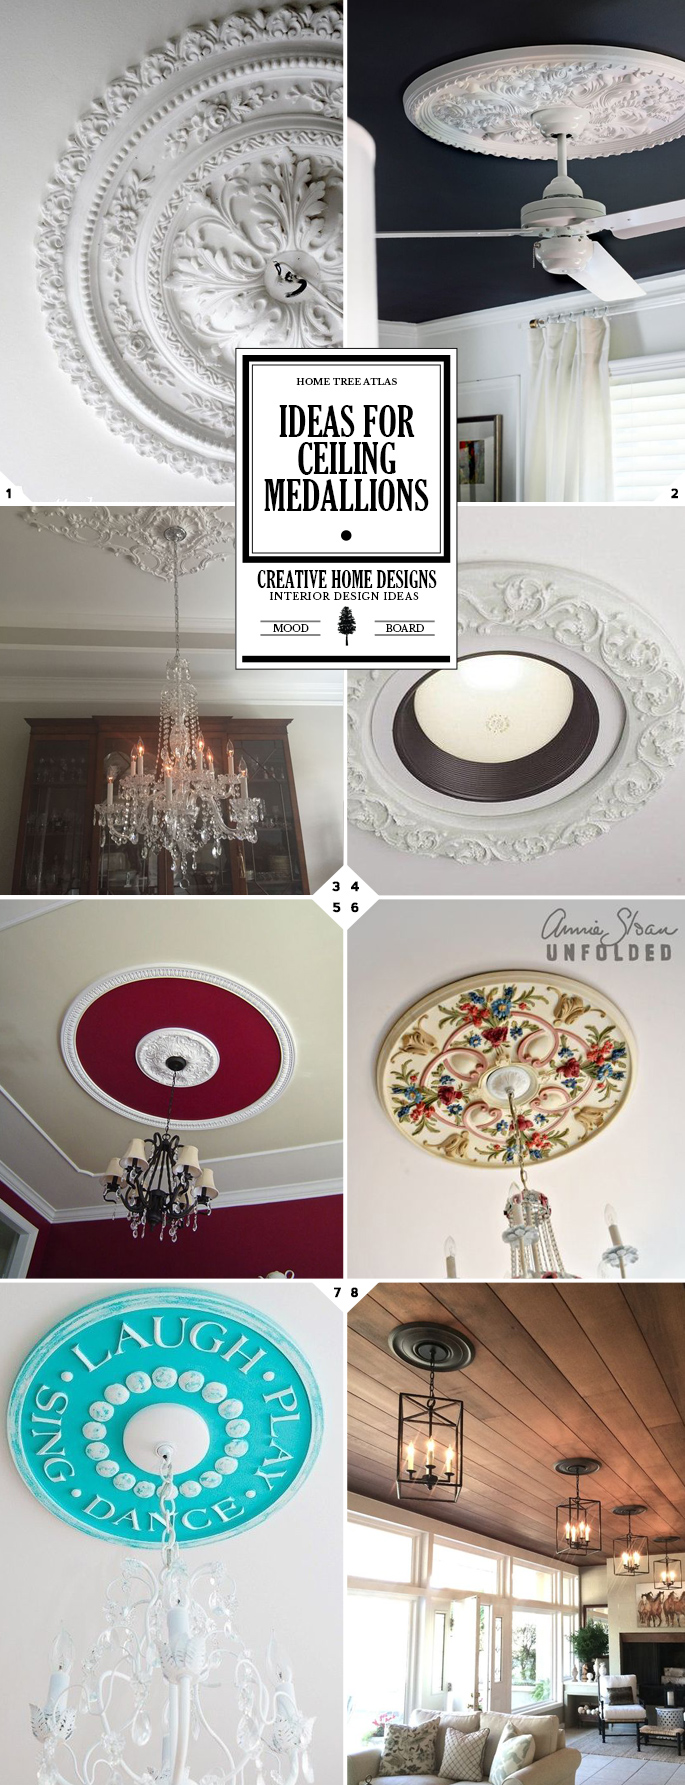 Design Ideas for Decorative Ceiling Medallions